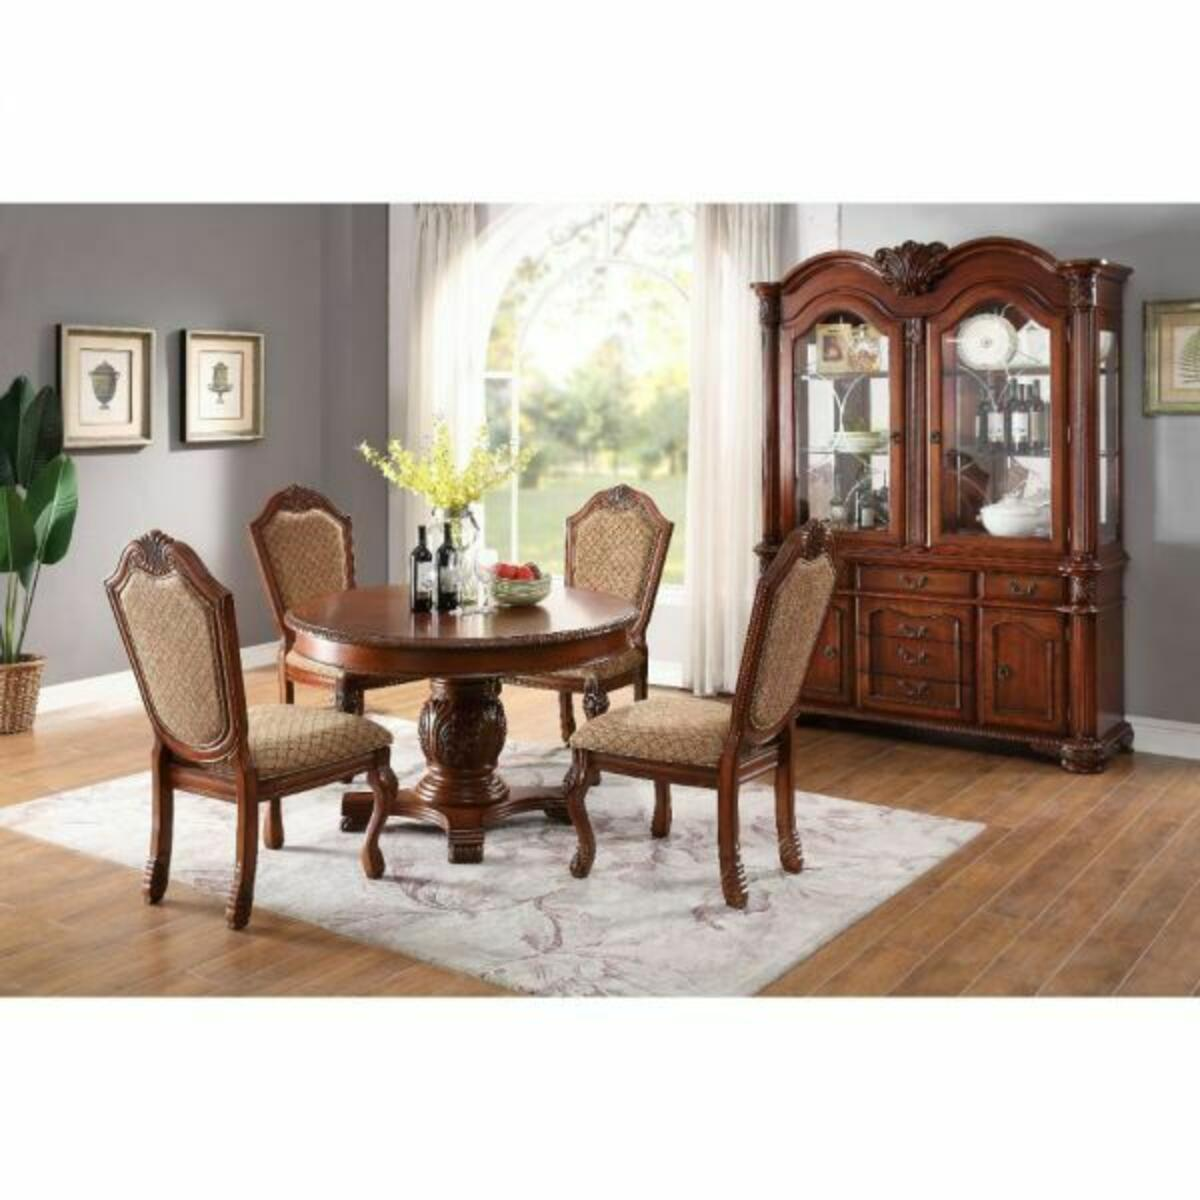 ACME Chateau De Ville Dining Table - 64170 - Cherry